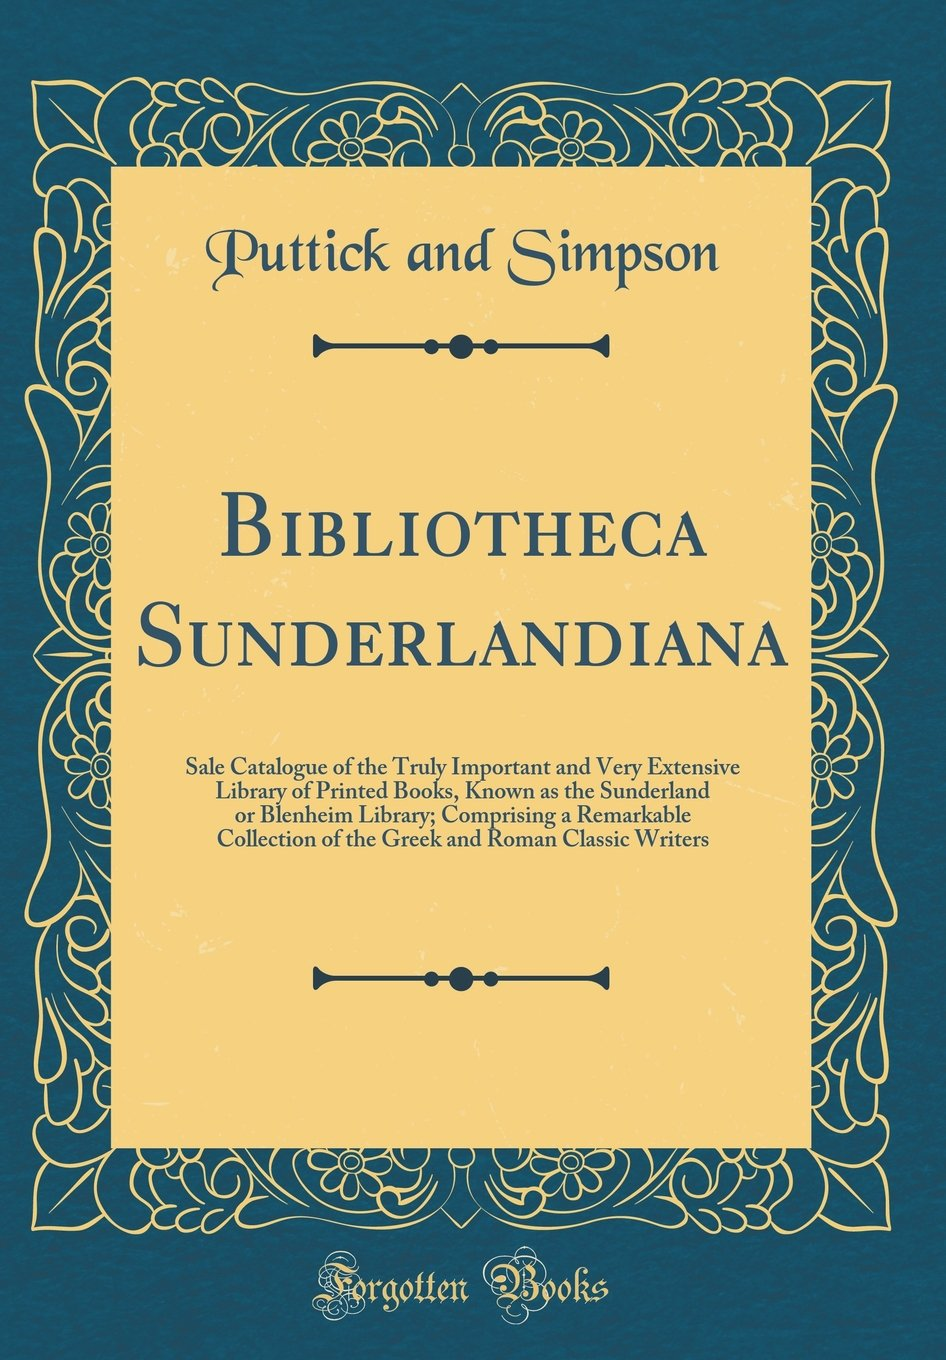 Bibliotheca Sunderlandiana: Sale Catalogue of the Truly Important and Very Extensive Library of Printed Books, Known as the Sunderland or Blenheim ... and Roman Classic Writers (Classic Reprint) ebook